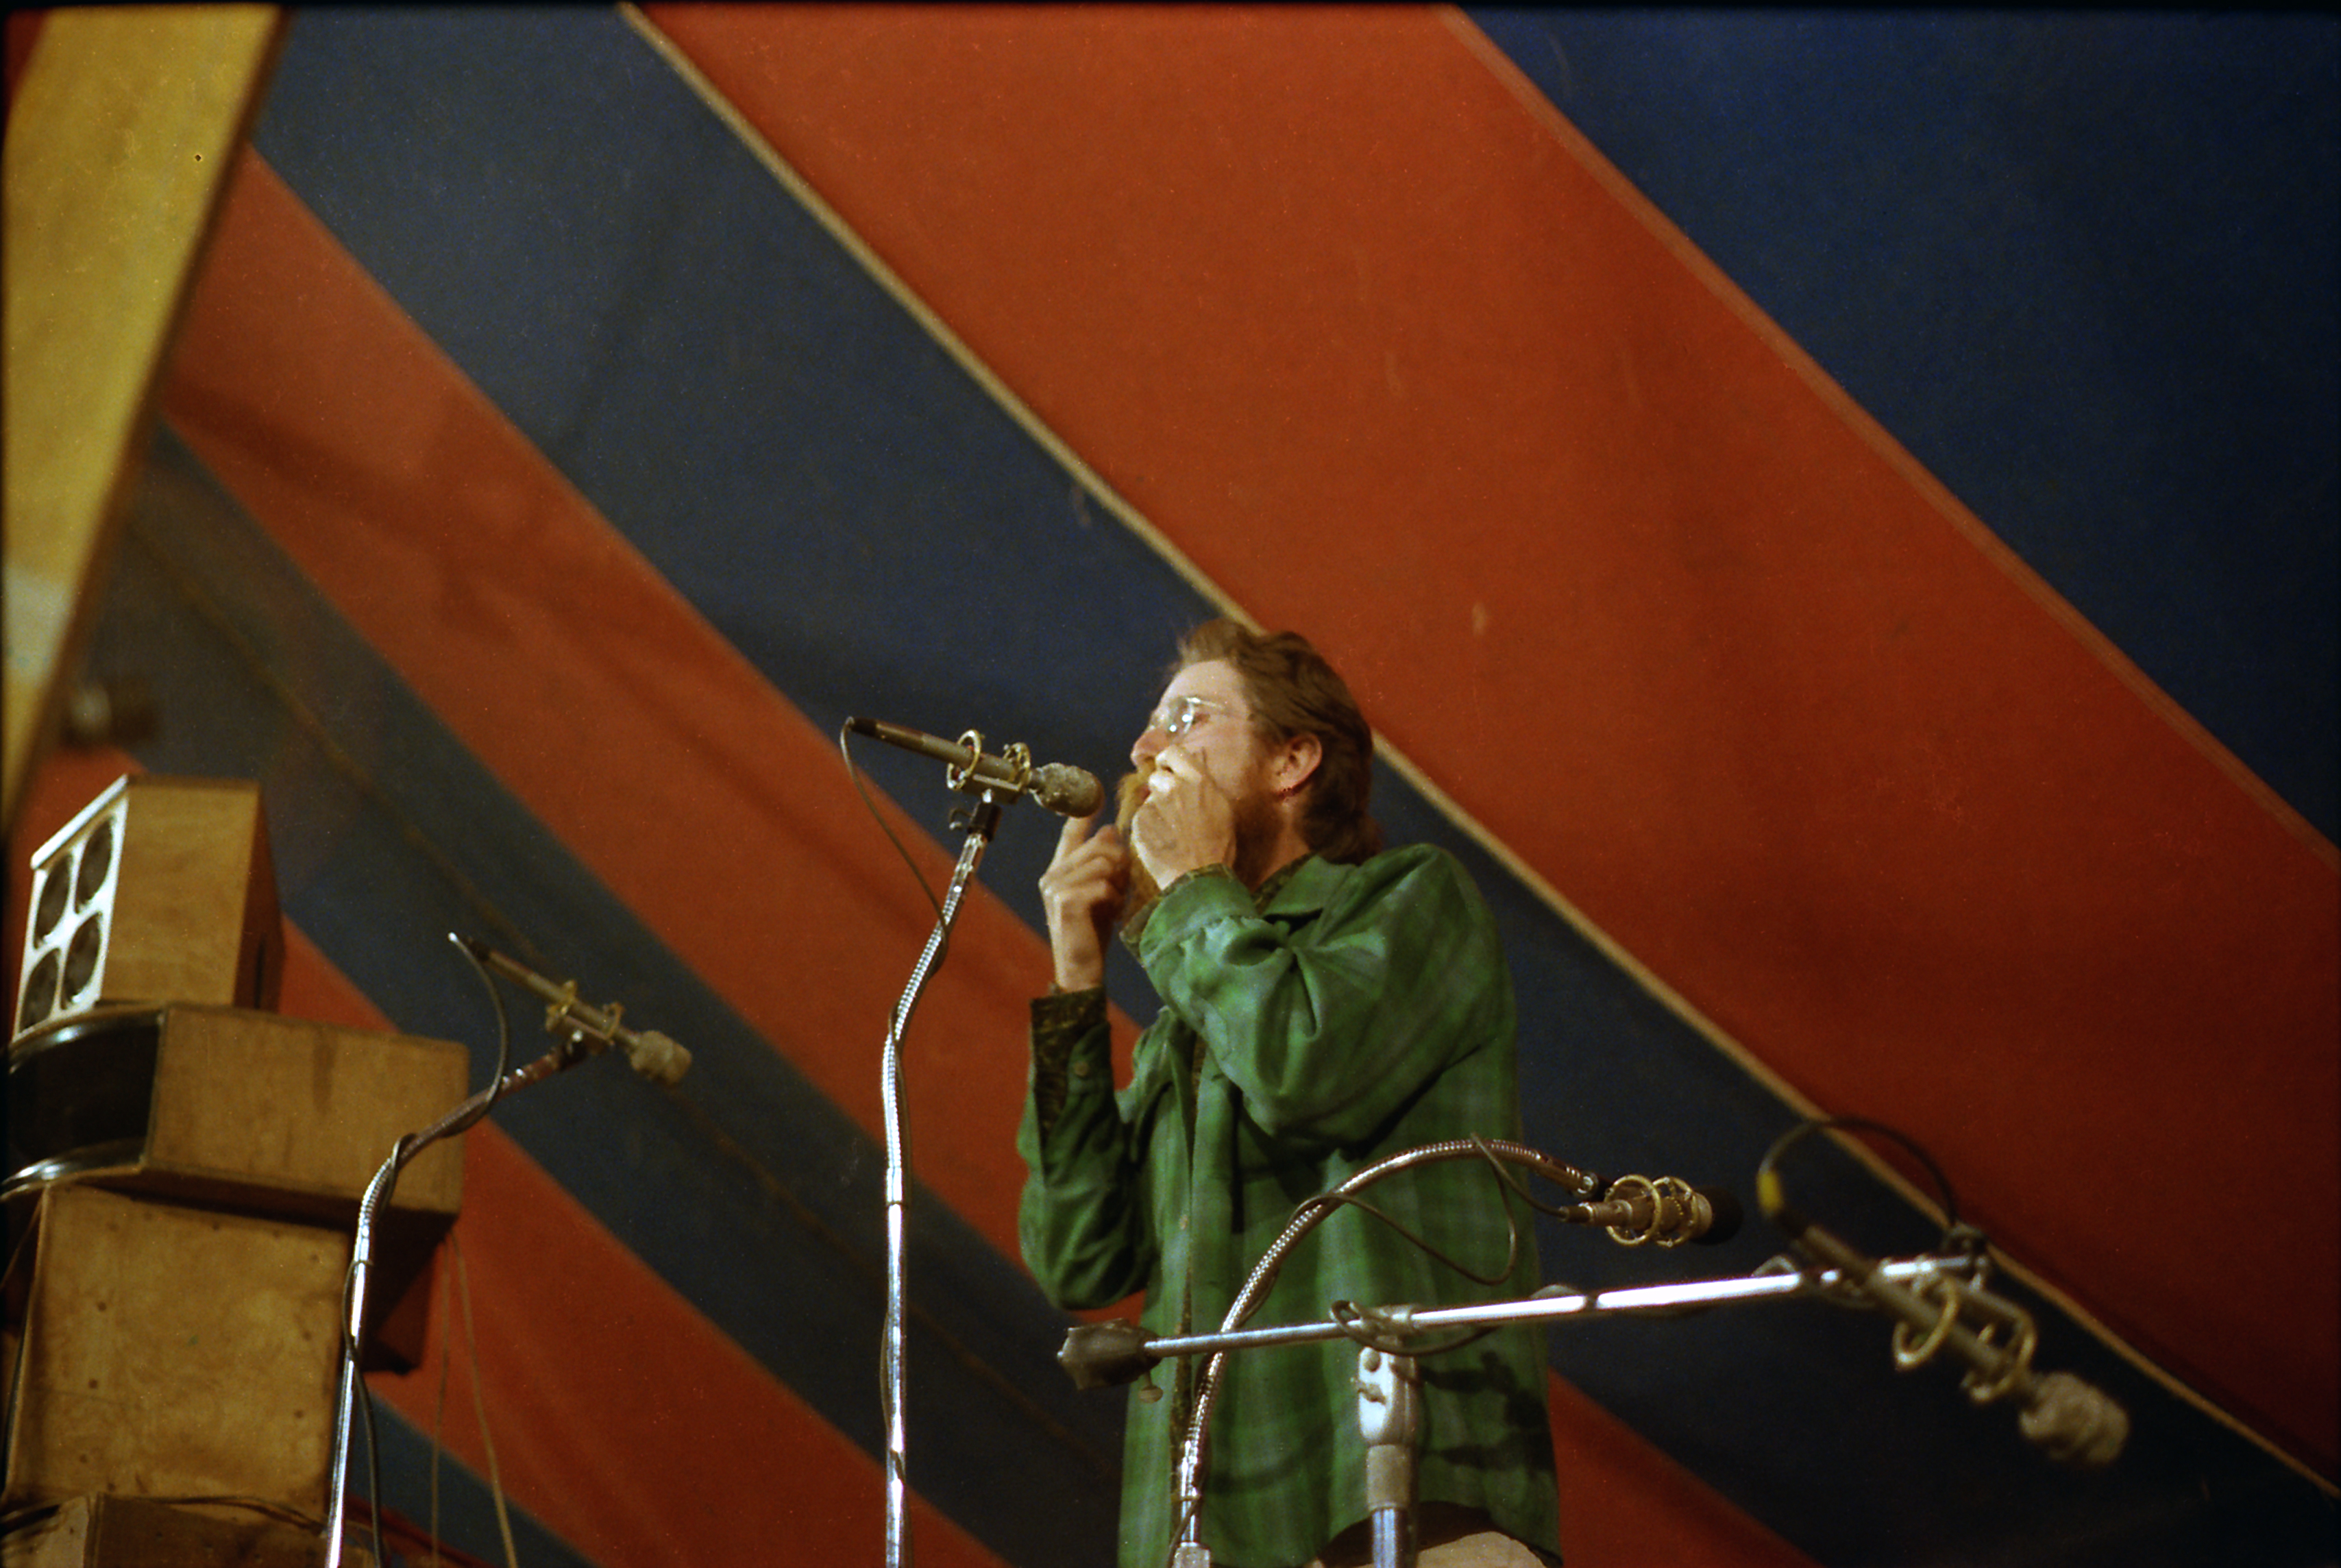 Larry Hanks and jaw harp on stage